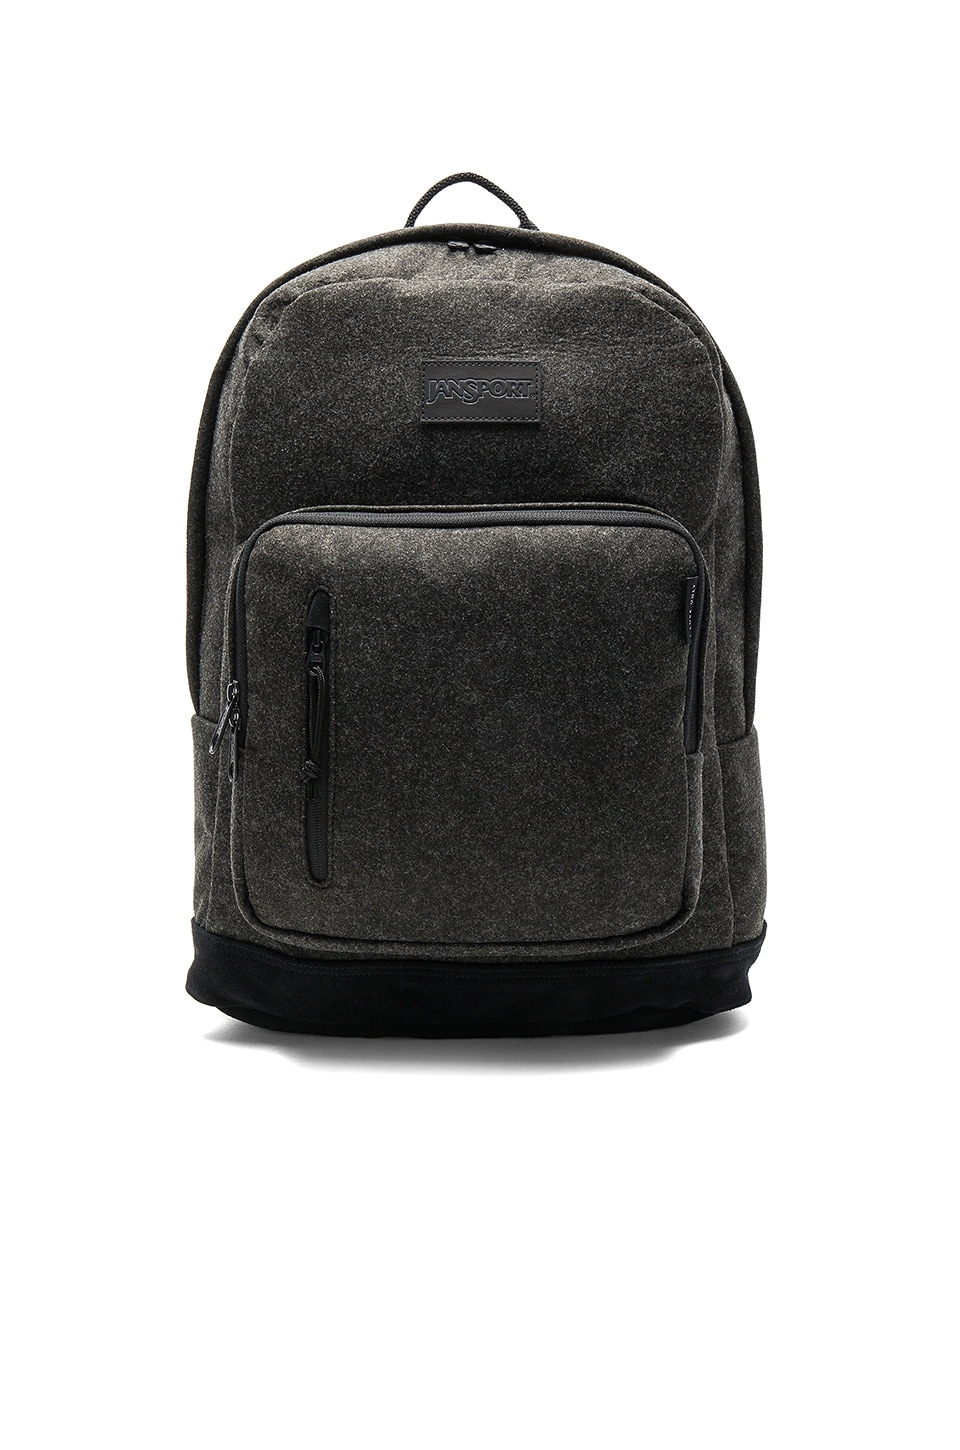 x I Love Ugly Axiom Backpack by Jansport